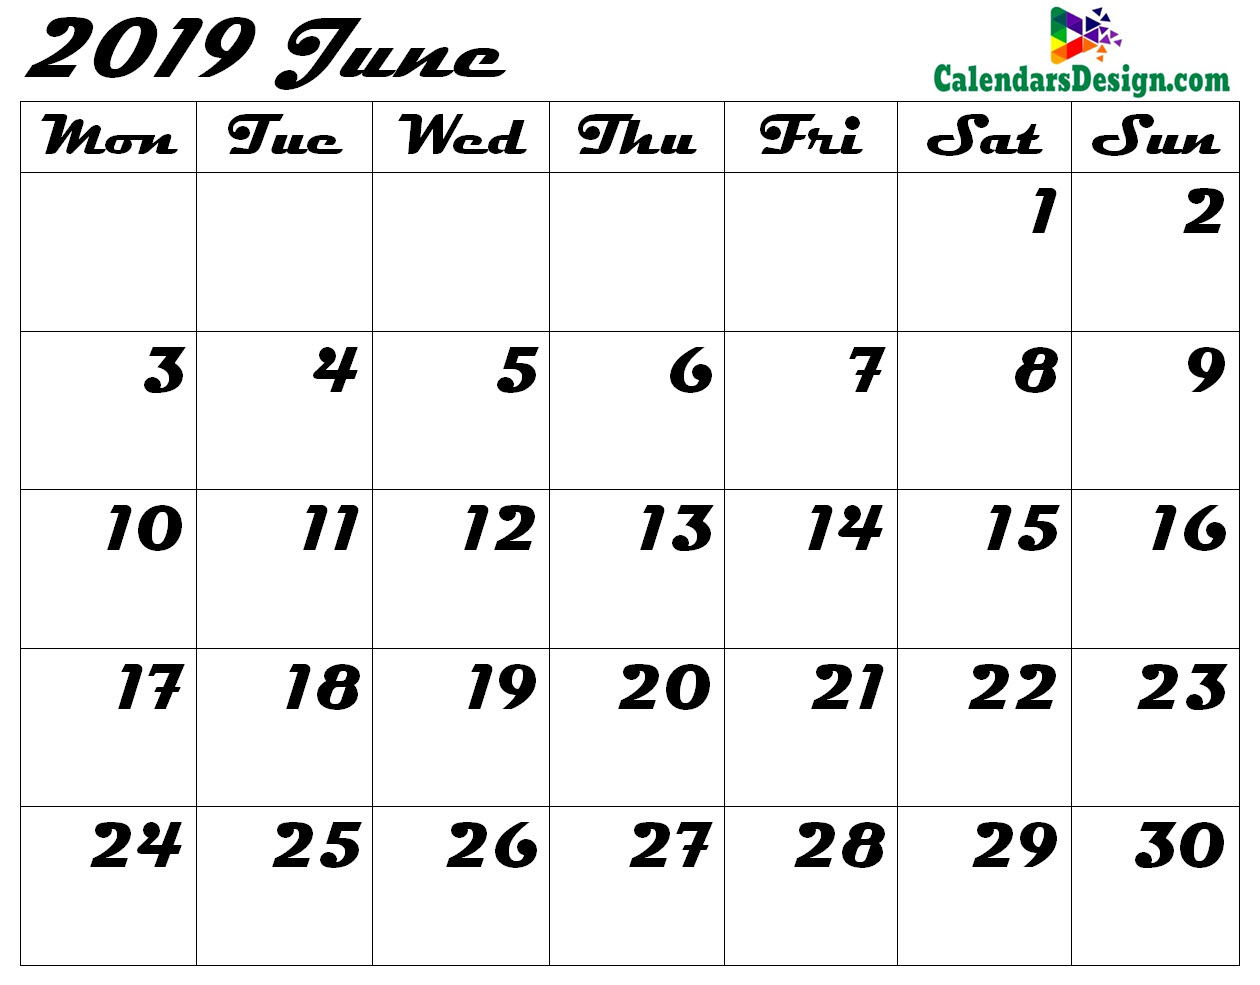 photo relating to June Printable Calendar named Editable June 2019 Calendar Blank Template - Cost-free 2019